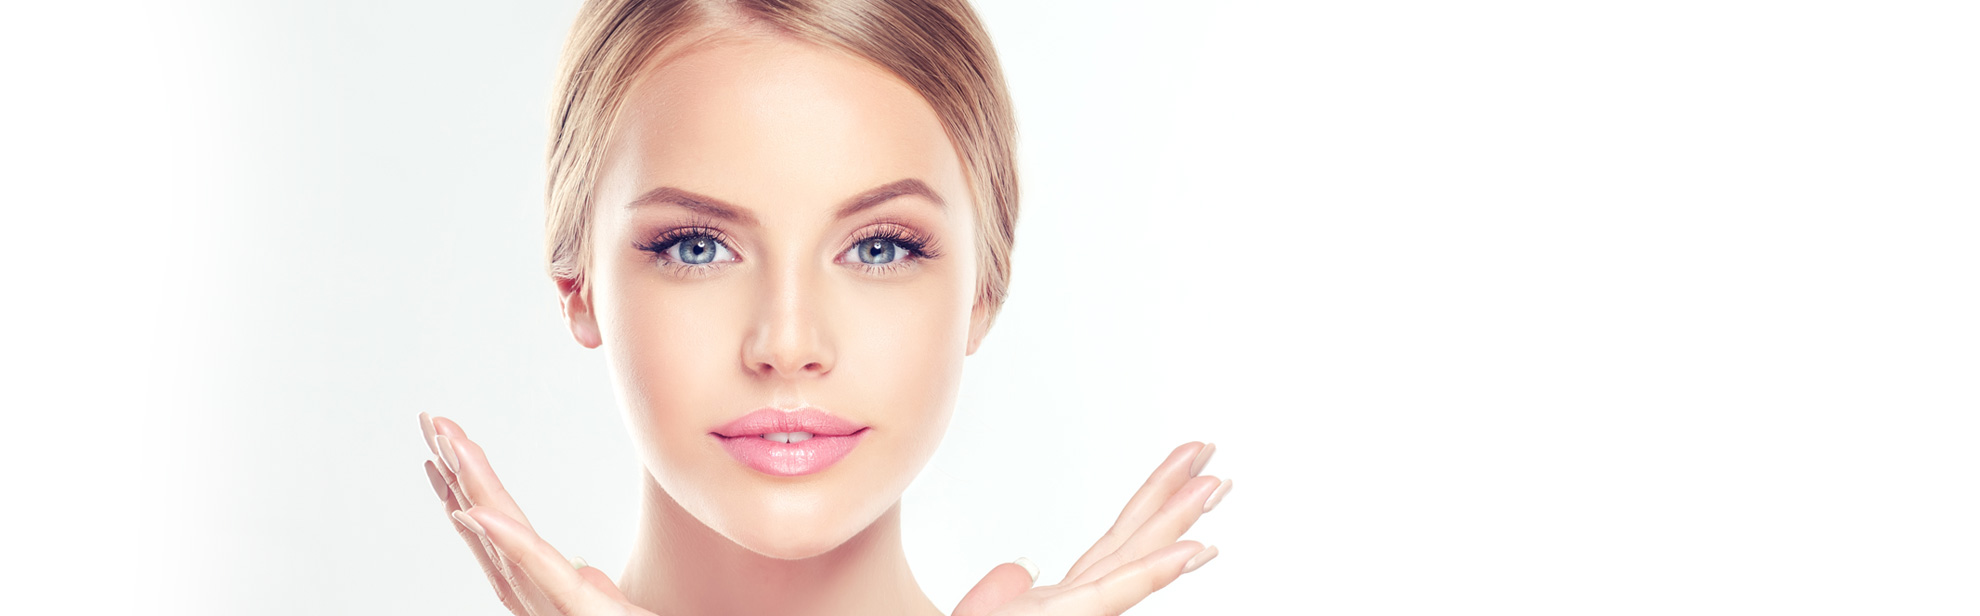 Non-Surgical Face Lift | Skincare by Candy Carlsbad CA